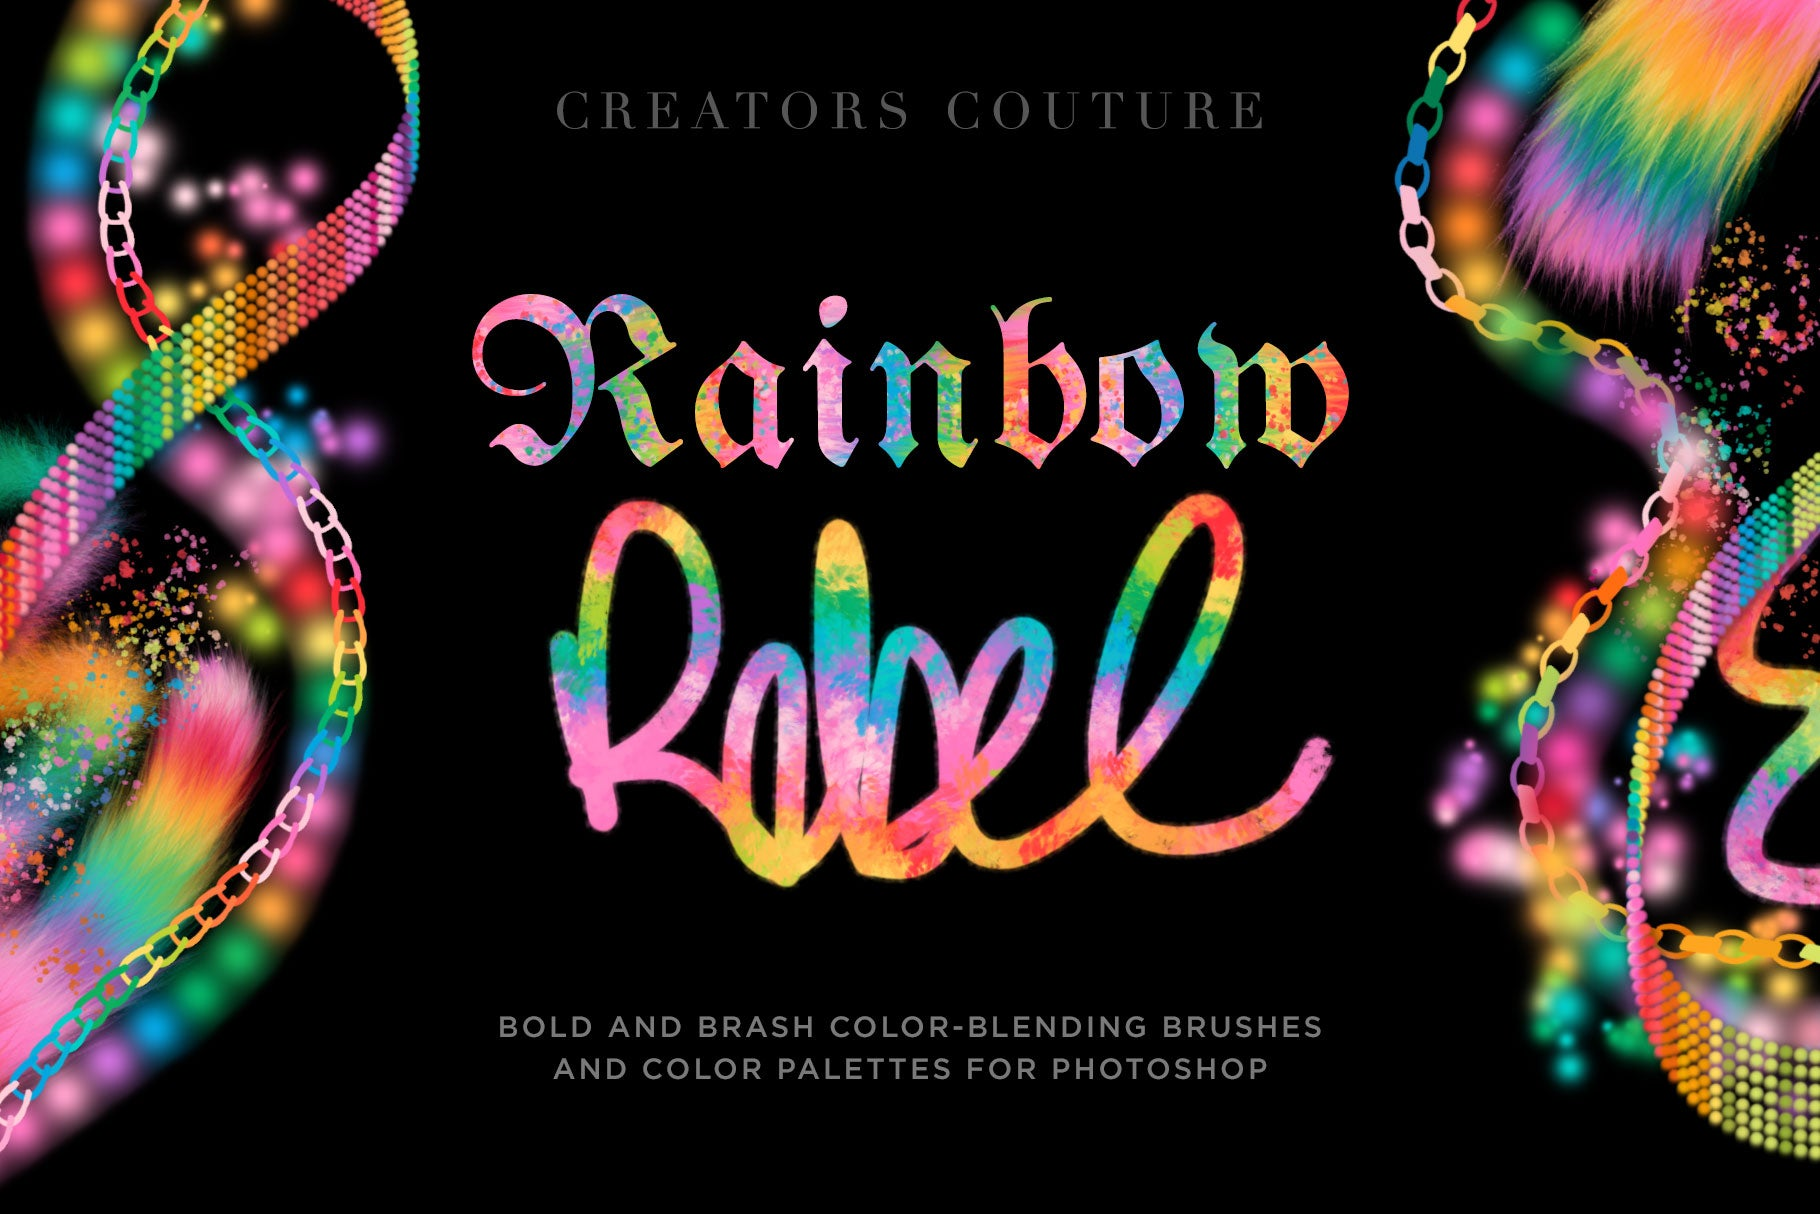 """Rainbow Rebel"" Color-Blending Photoshop Brushes and Color Palettes - Creators Couture"